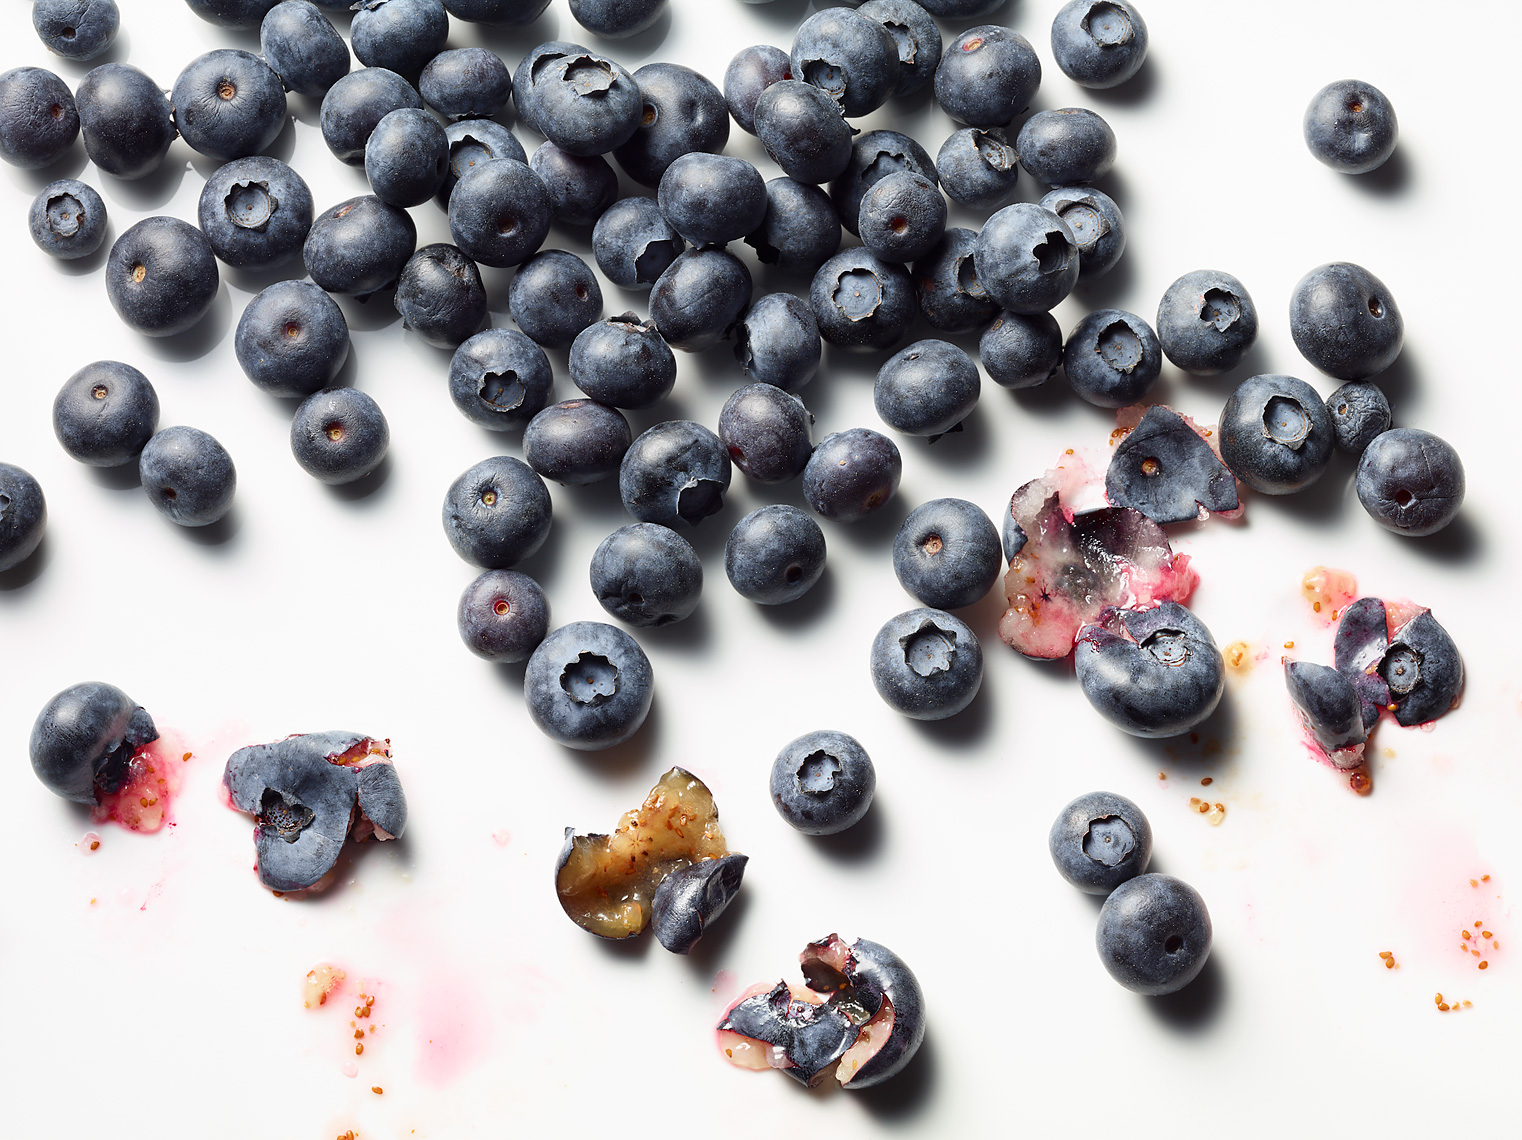 Glasshouse Assignment - Kang Kim - Food Photography - Smashed Blueberries